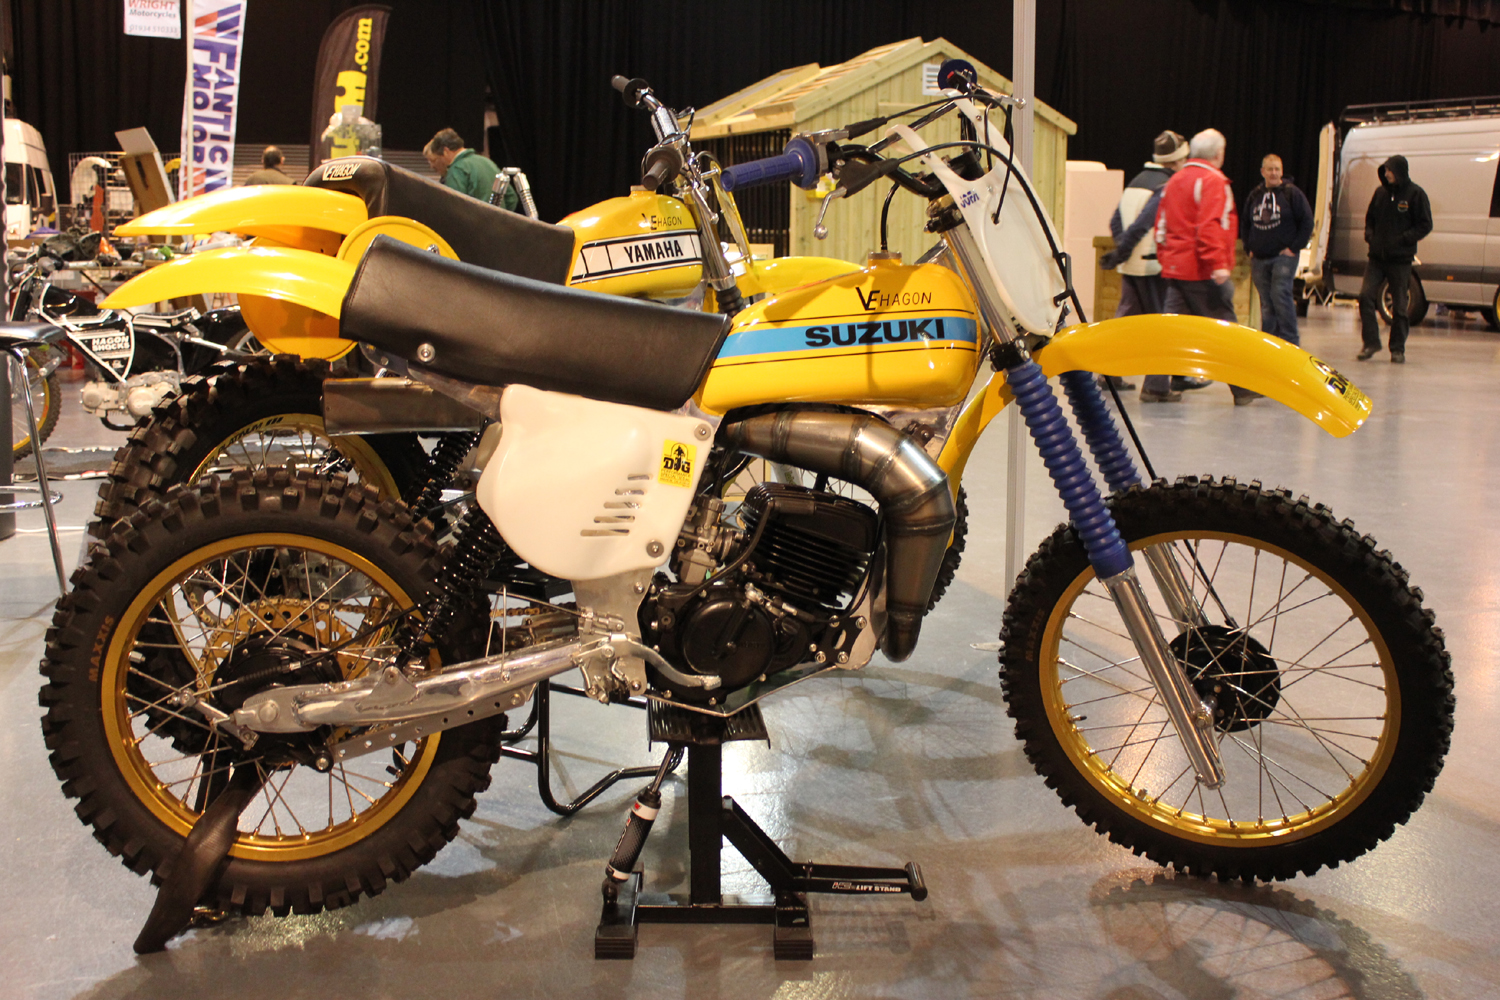 classicdirtbikerider.com-photo by Mr J-2015 Telford classic dirt bike show-VE HAGON FRAMED SUZUKI RM TWINSHOCK